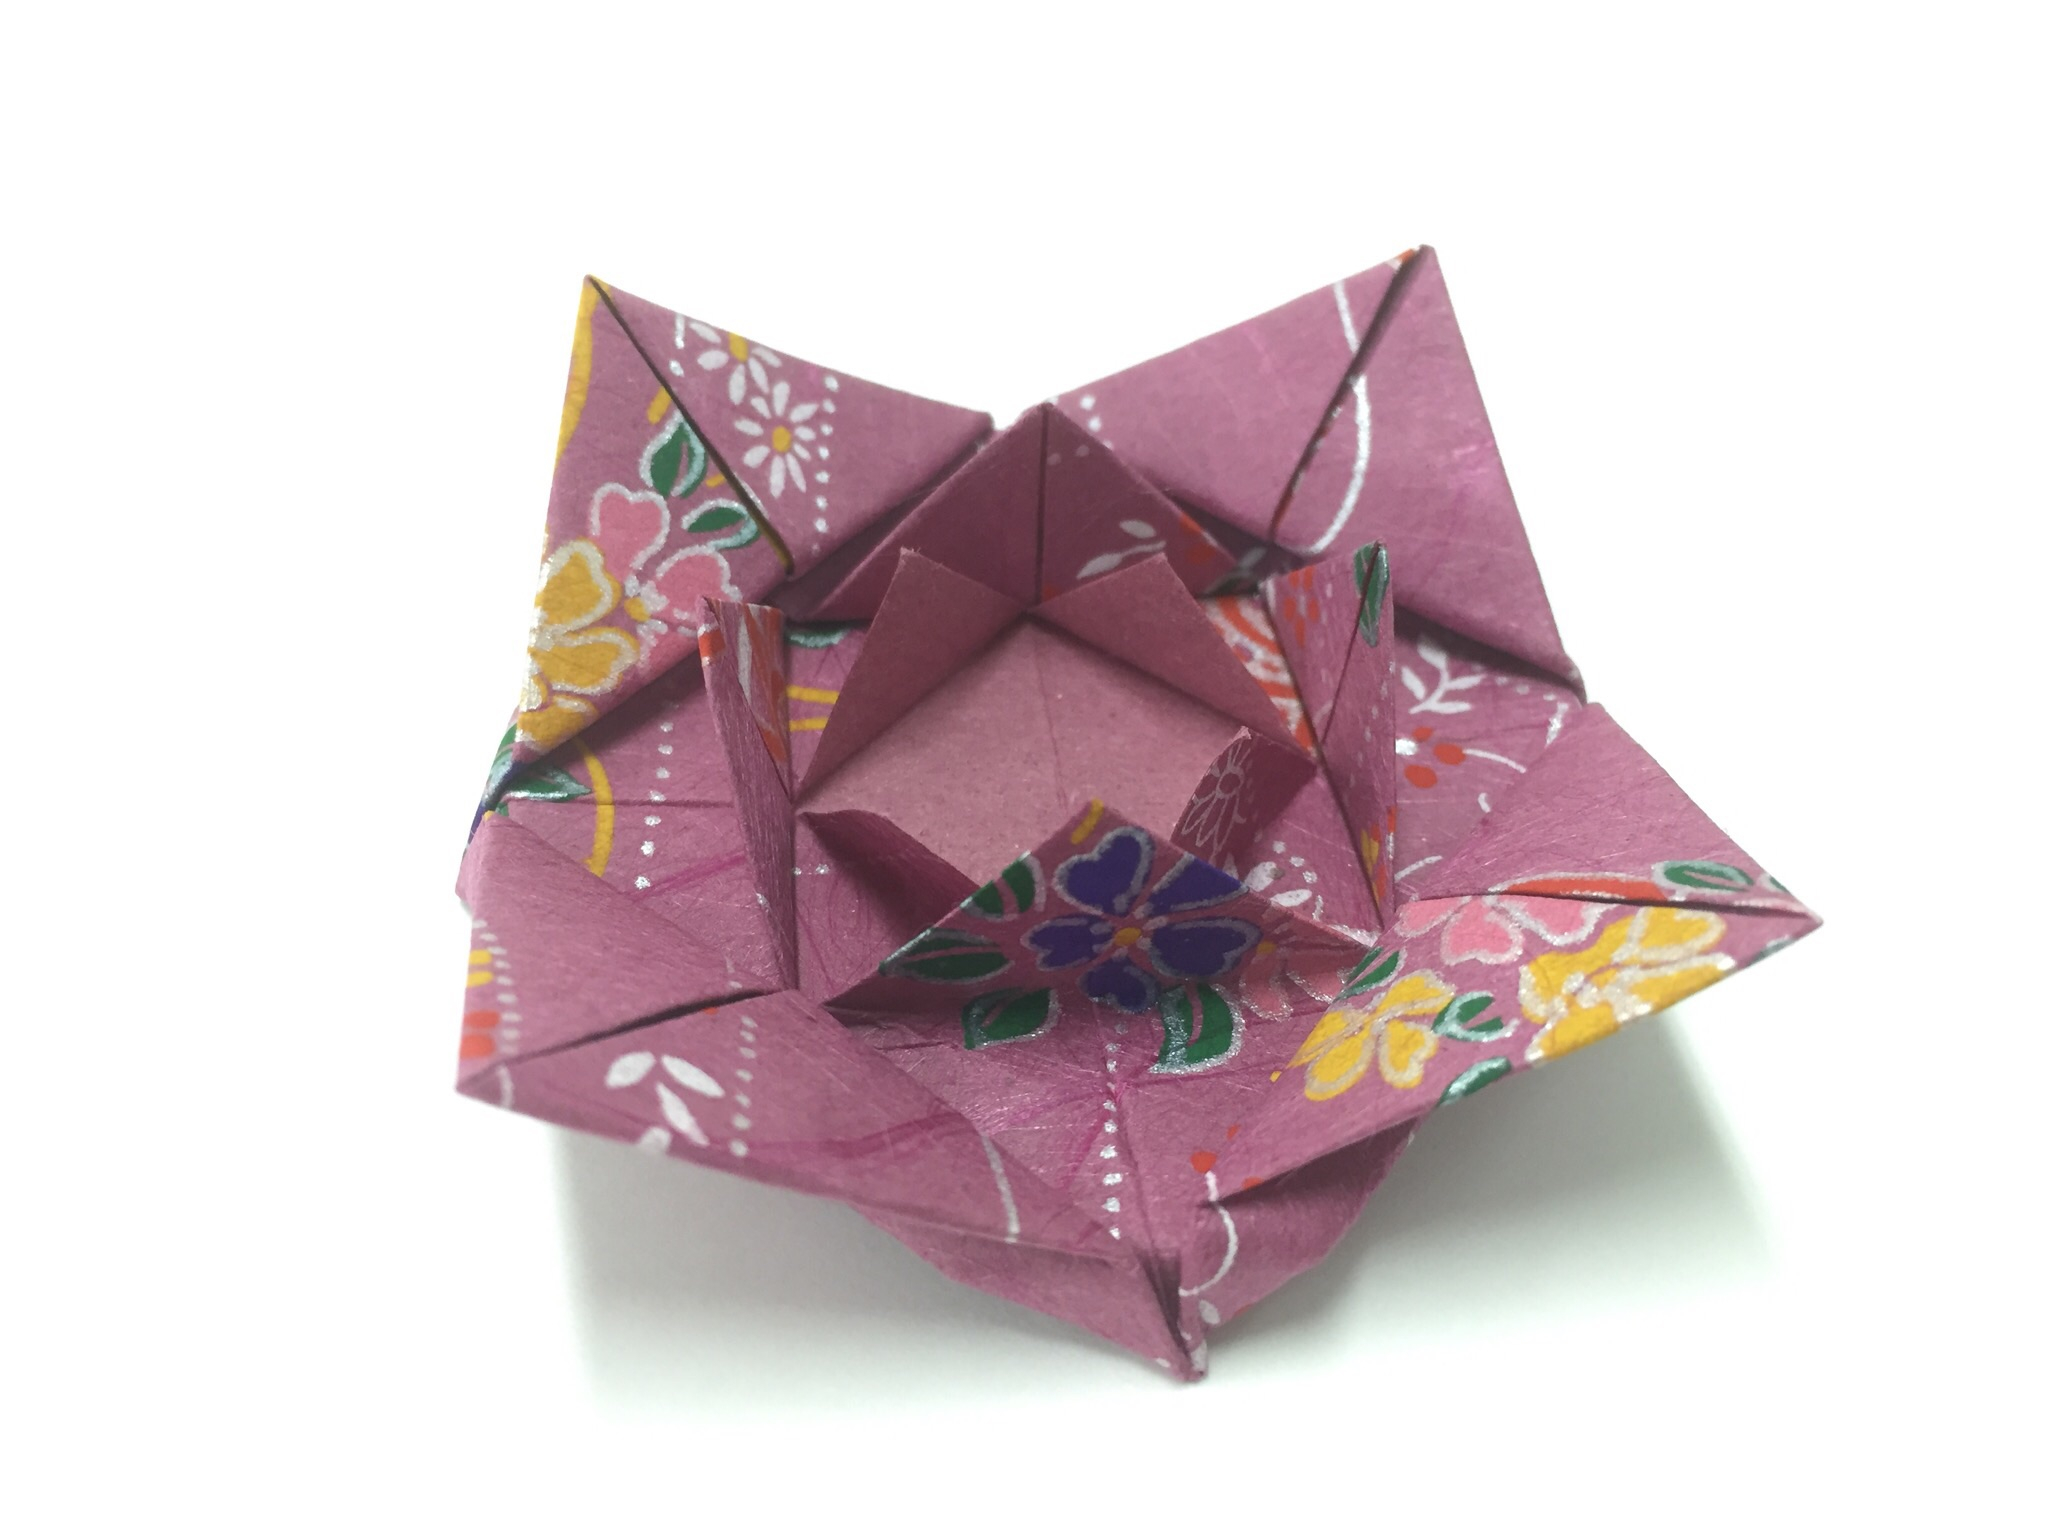 How To Origami Rose How To Make An Origami Rose In 8 Easy Steps From Japan Blog